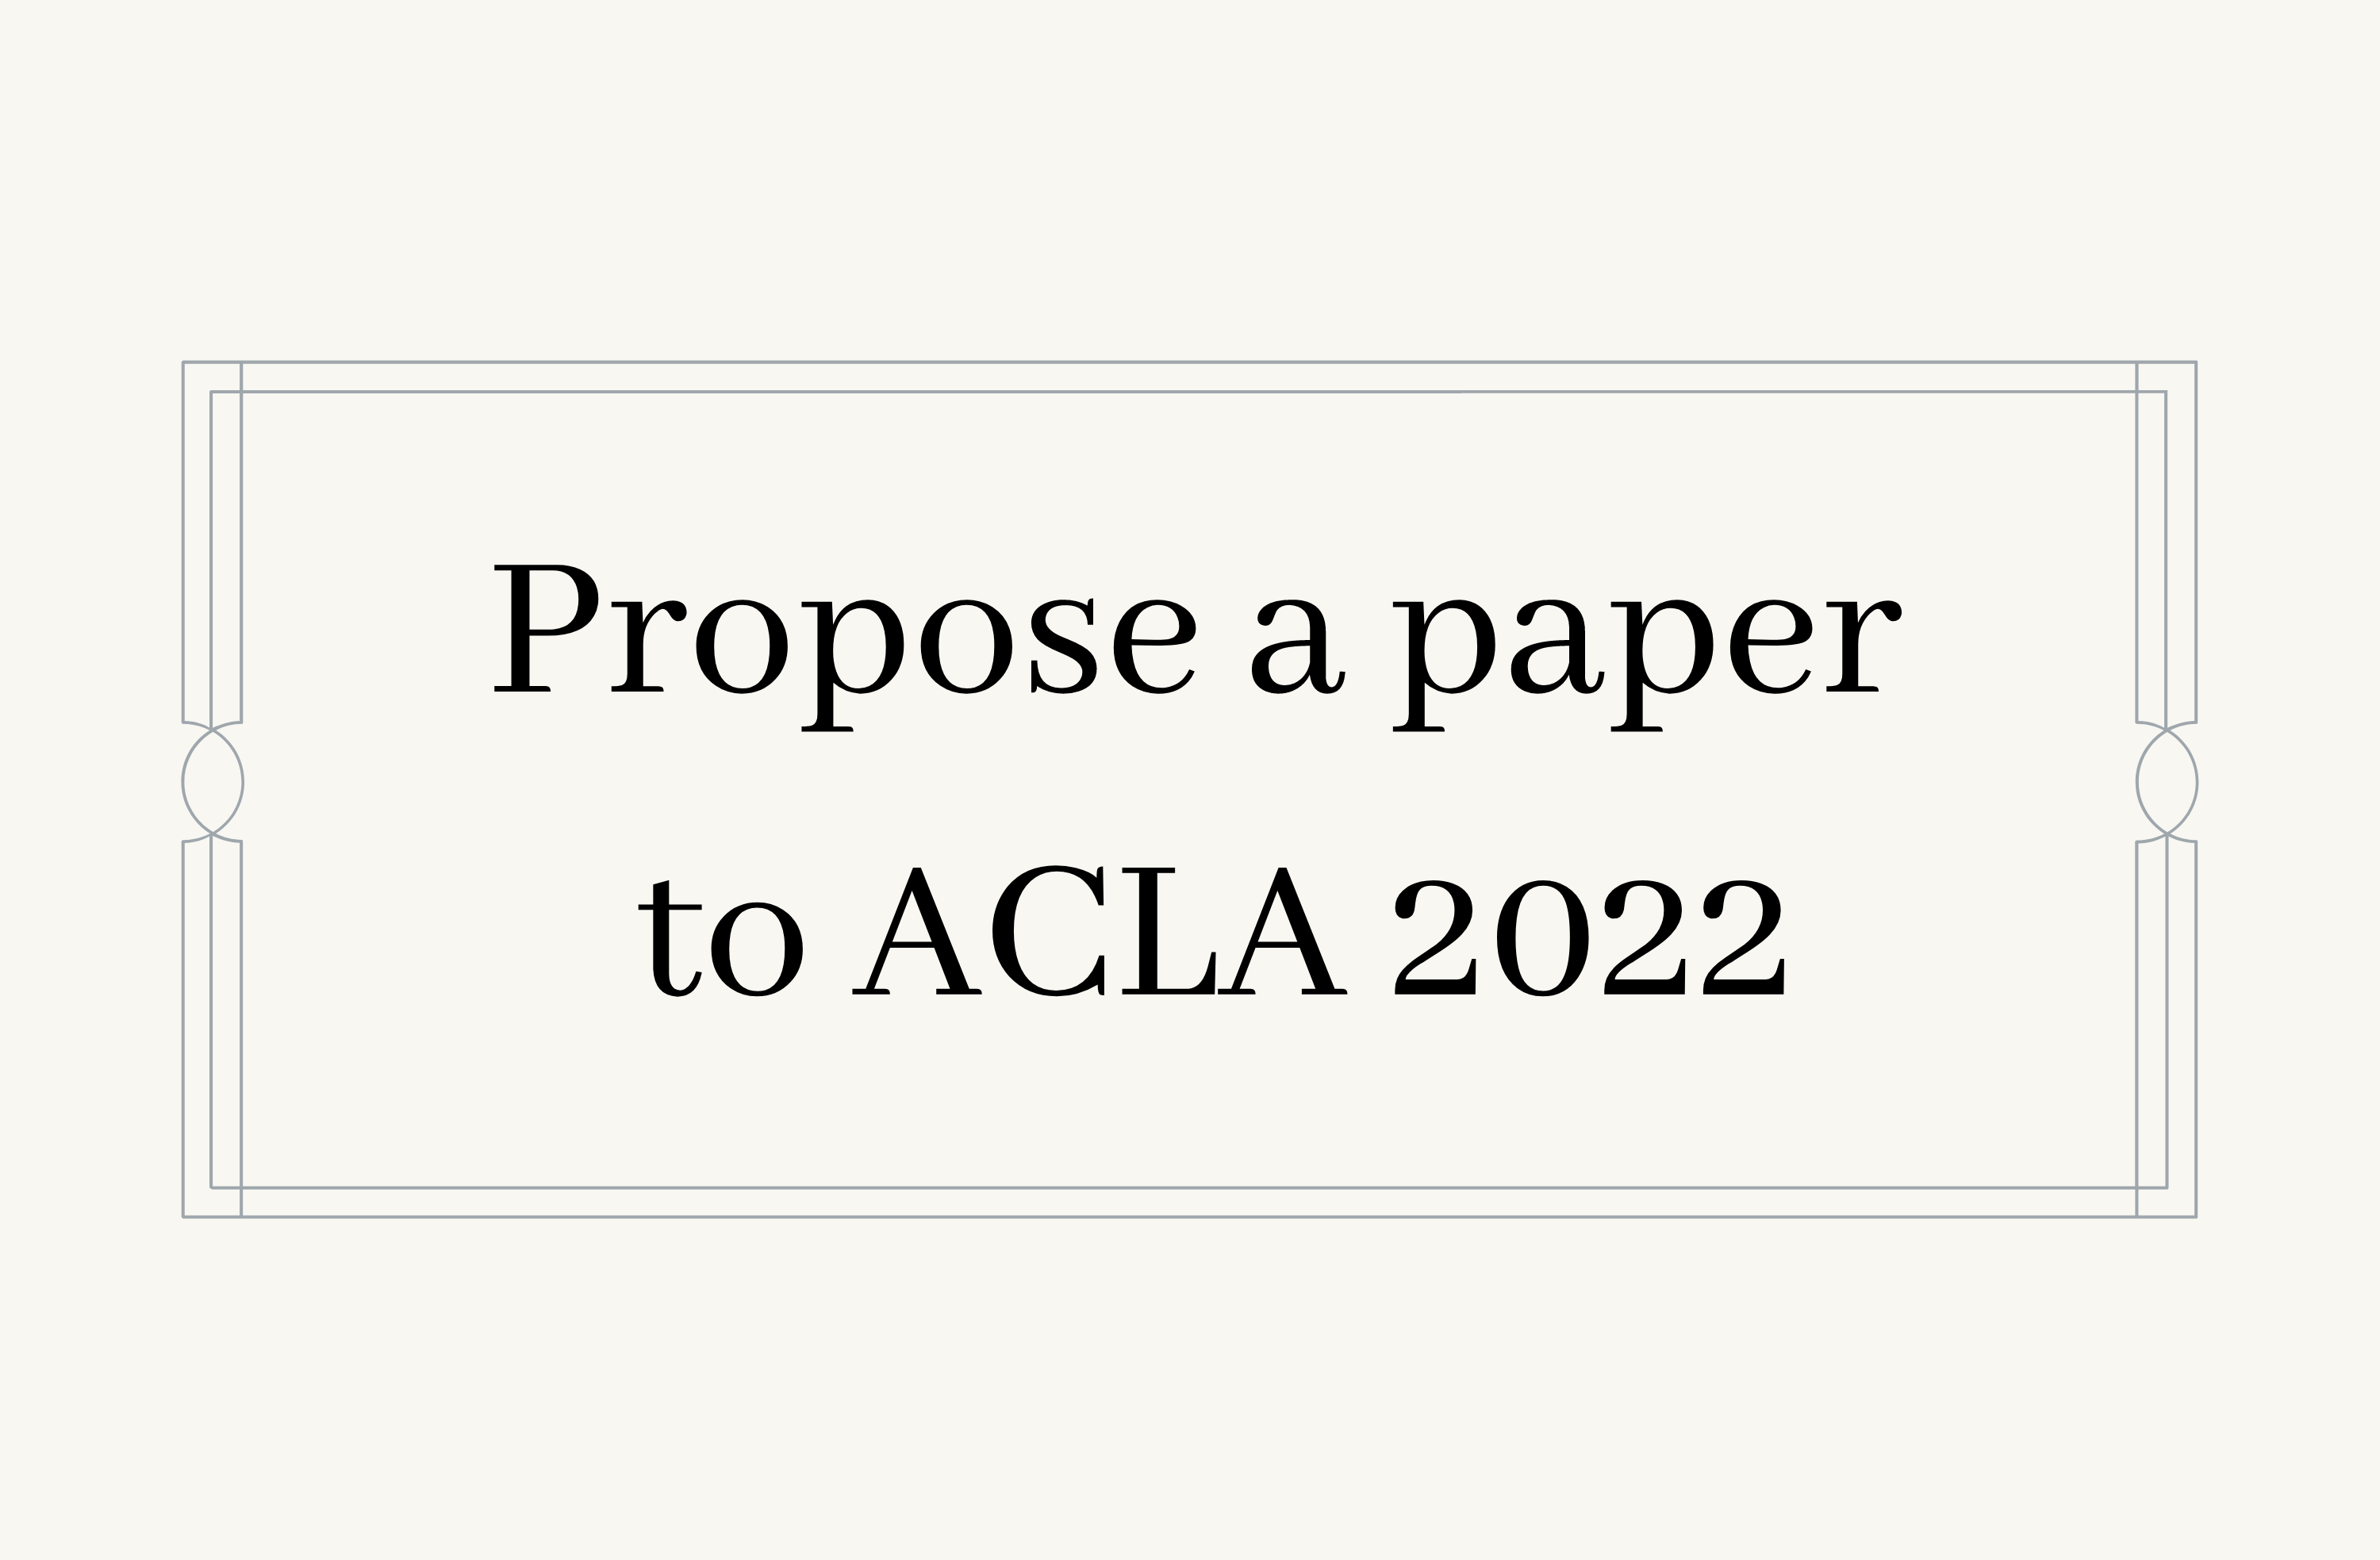 Propose a paper to ACLA 2022